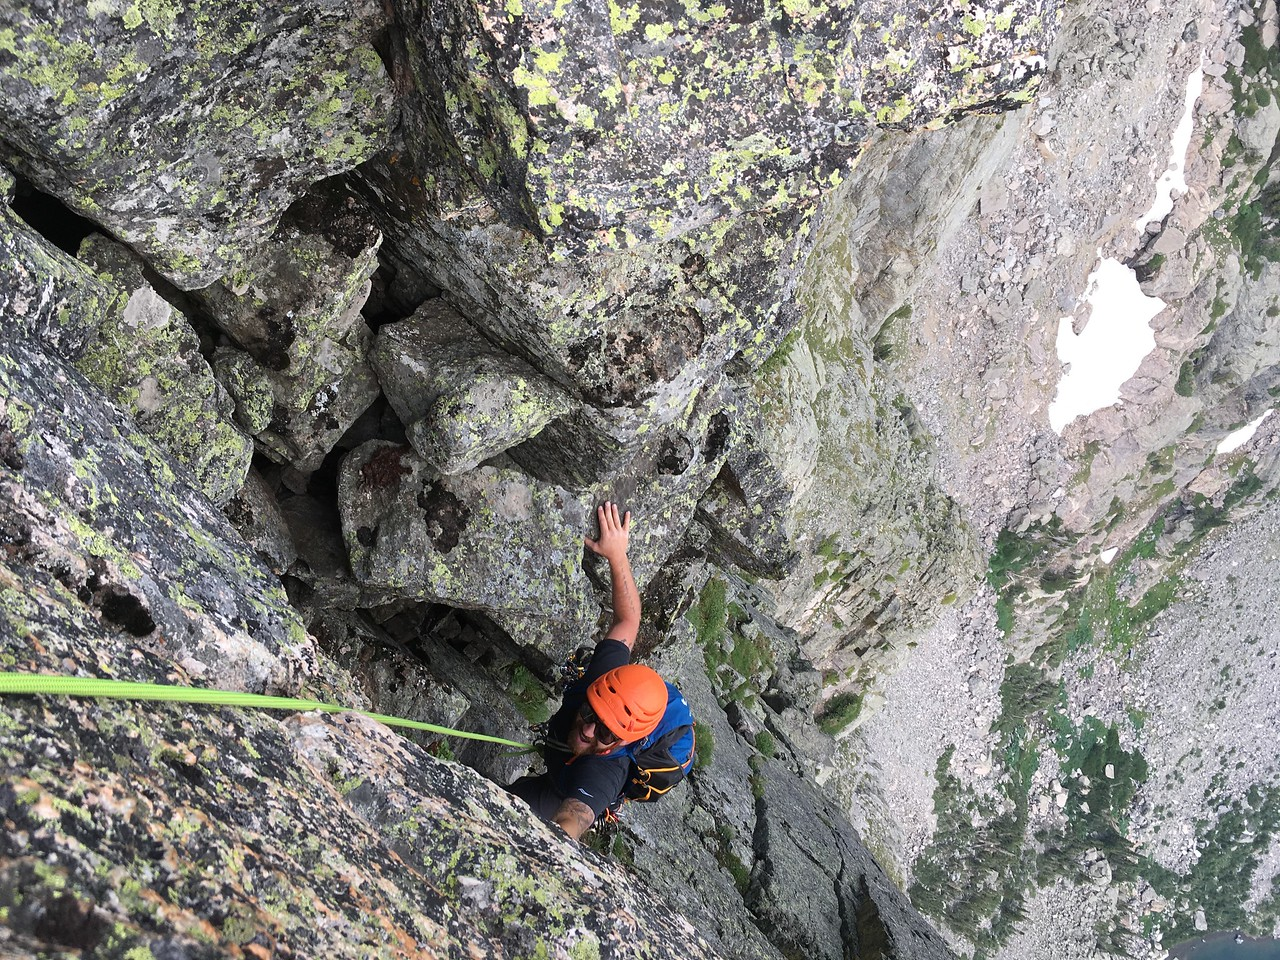 Climber on North Face of Hallet Peak